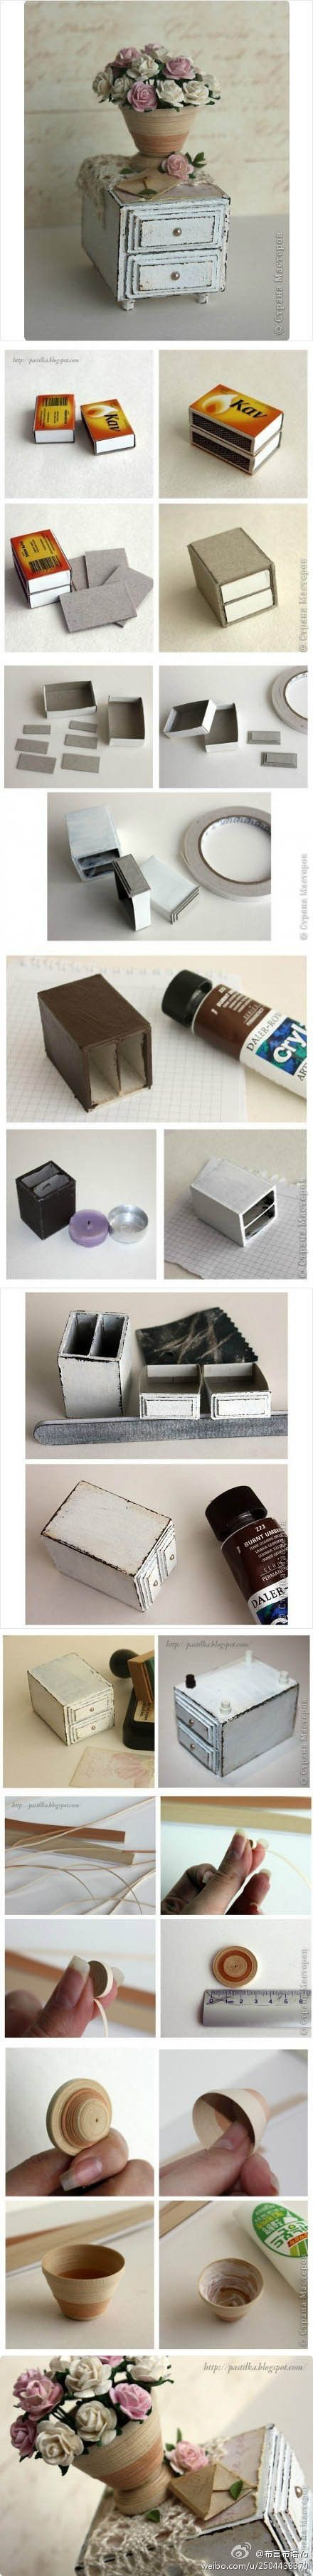 pinner writes I've been meaning to make something like this forever, now I found a great tutorial for it!!! make a cute mini commode out of matchboxes!!